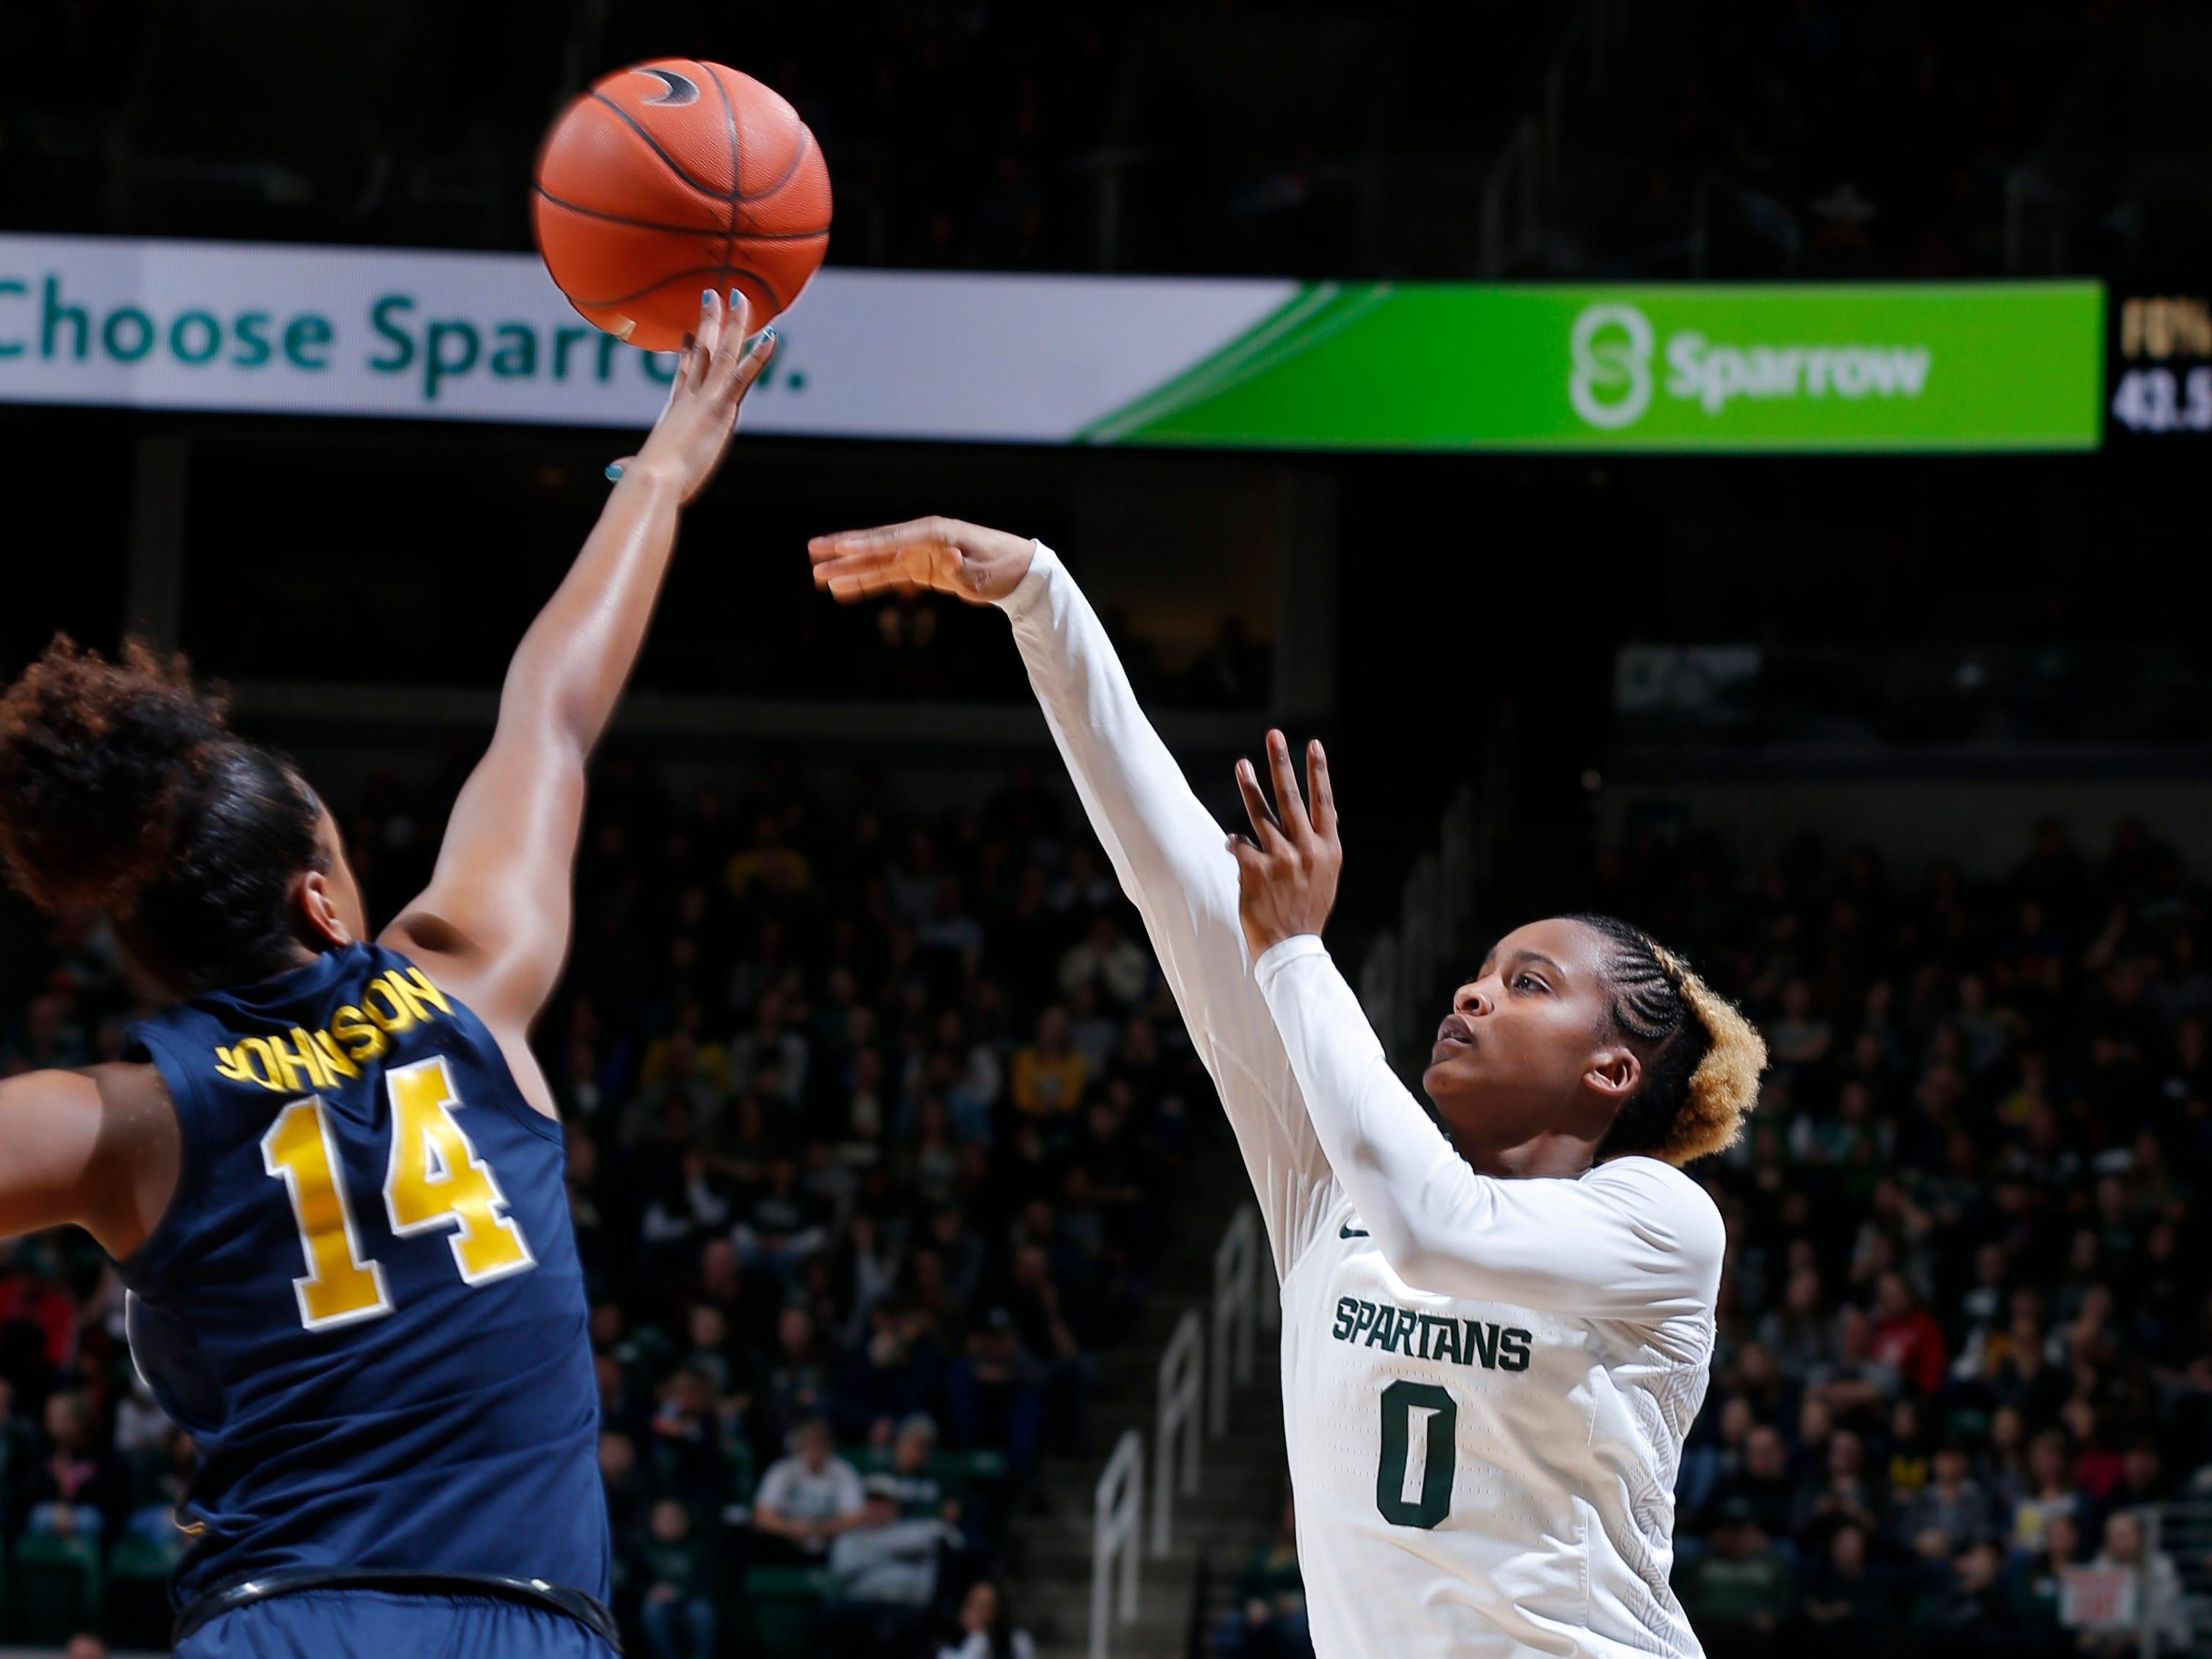 Michigan State's Shay Colley, right, shoots against Michigan's Akienreh Johnson (14).